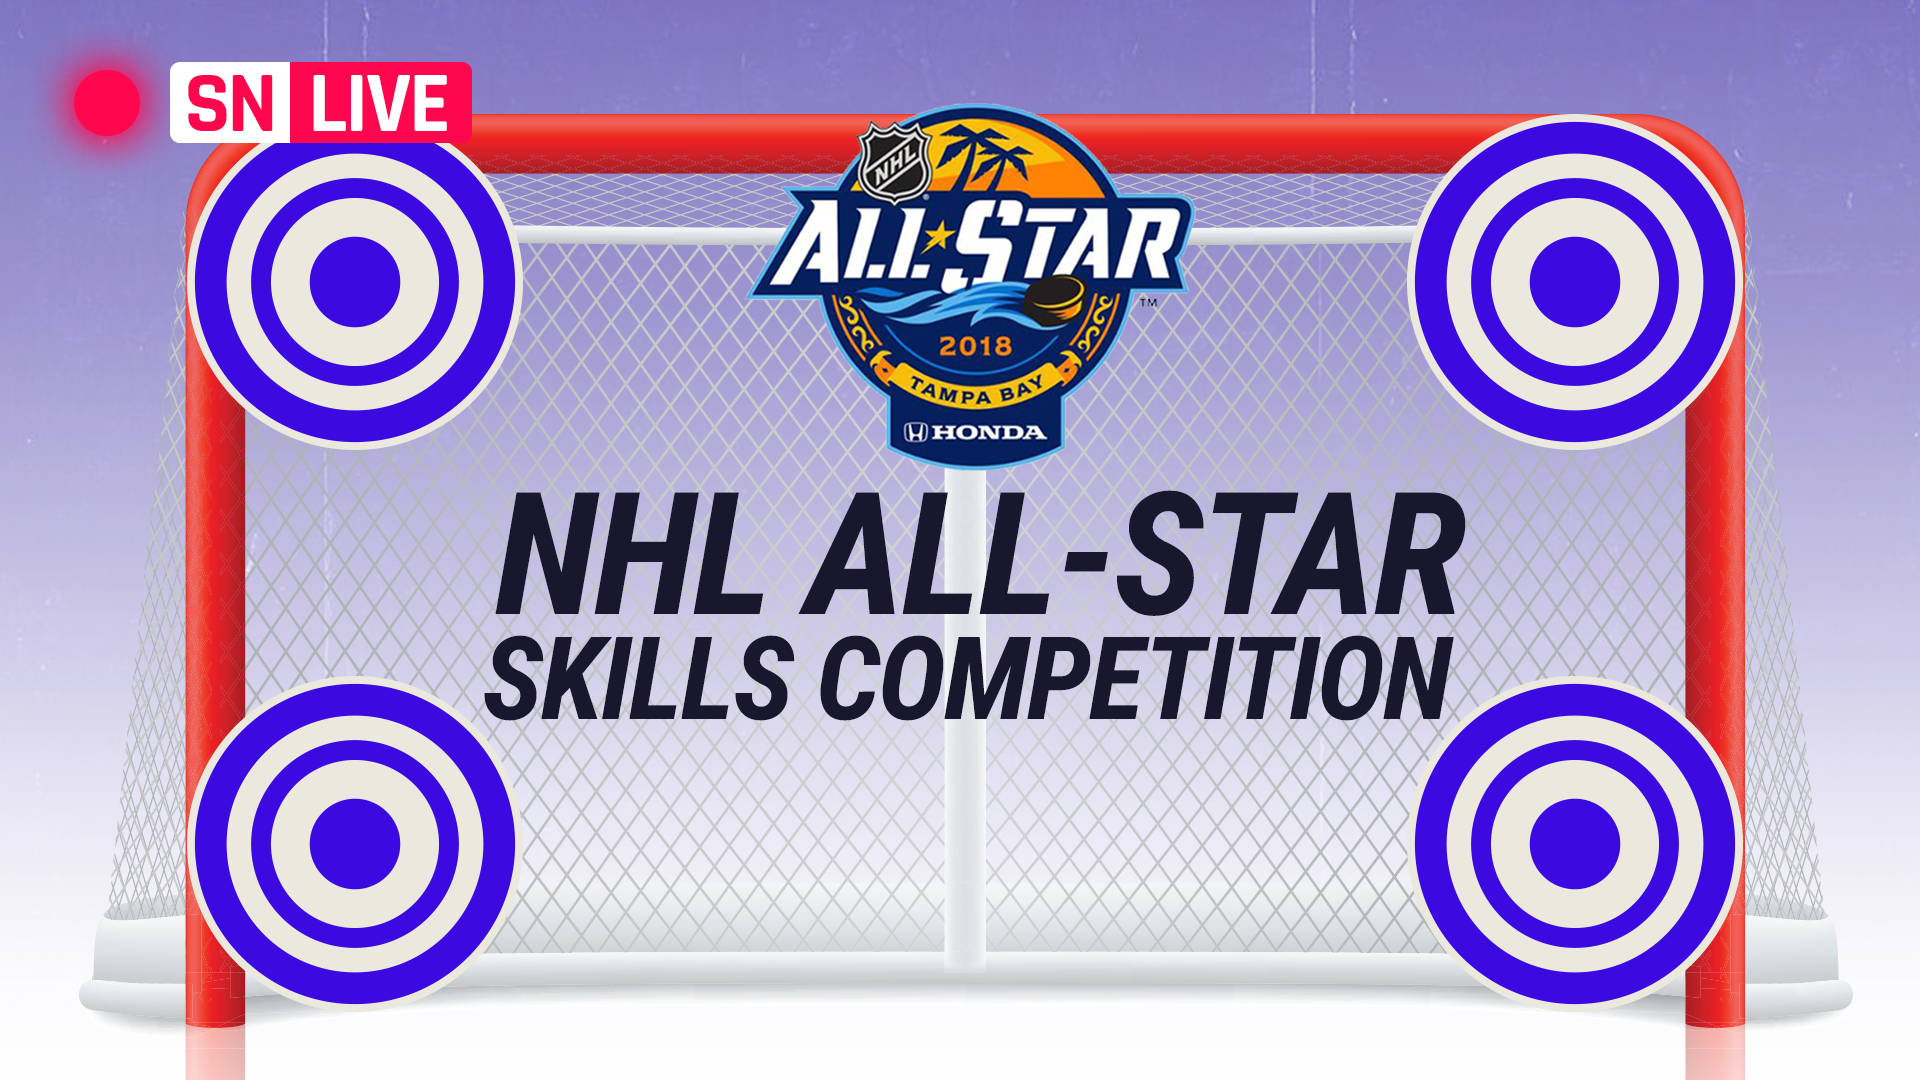 San Jose to host 2019 NHL All-Star game